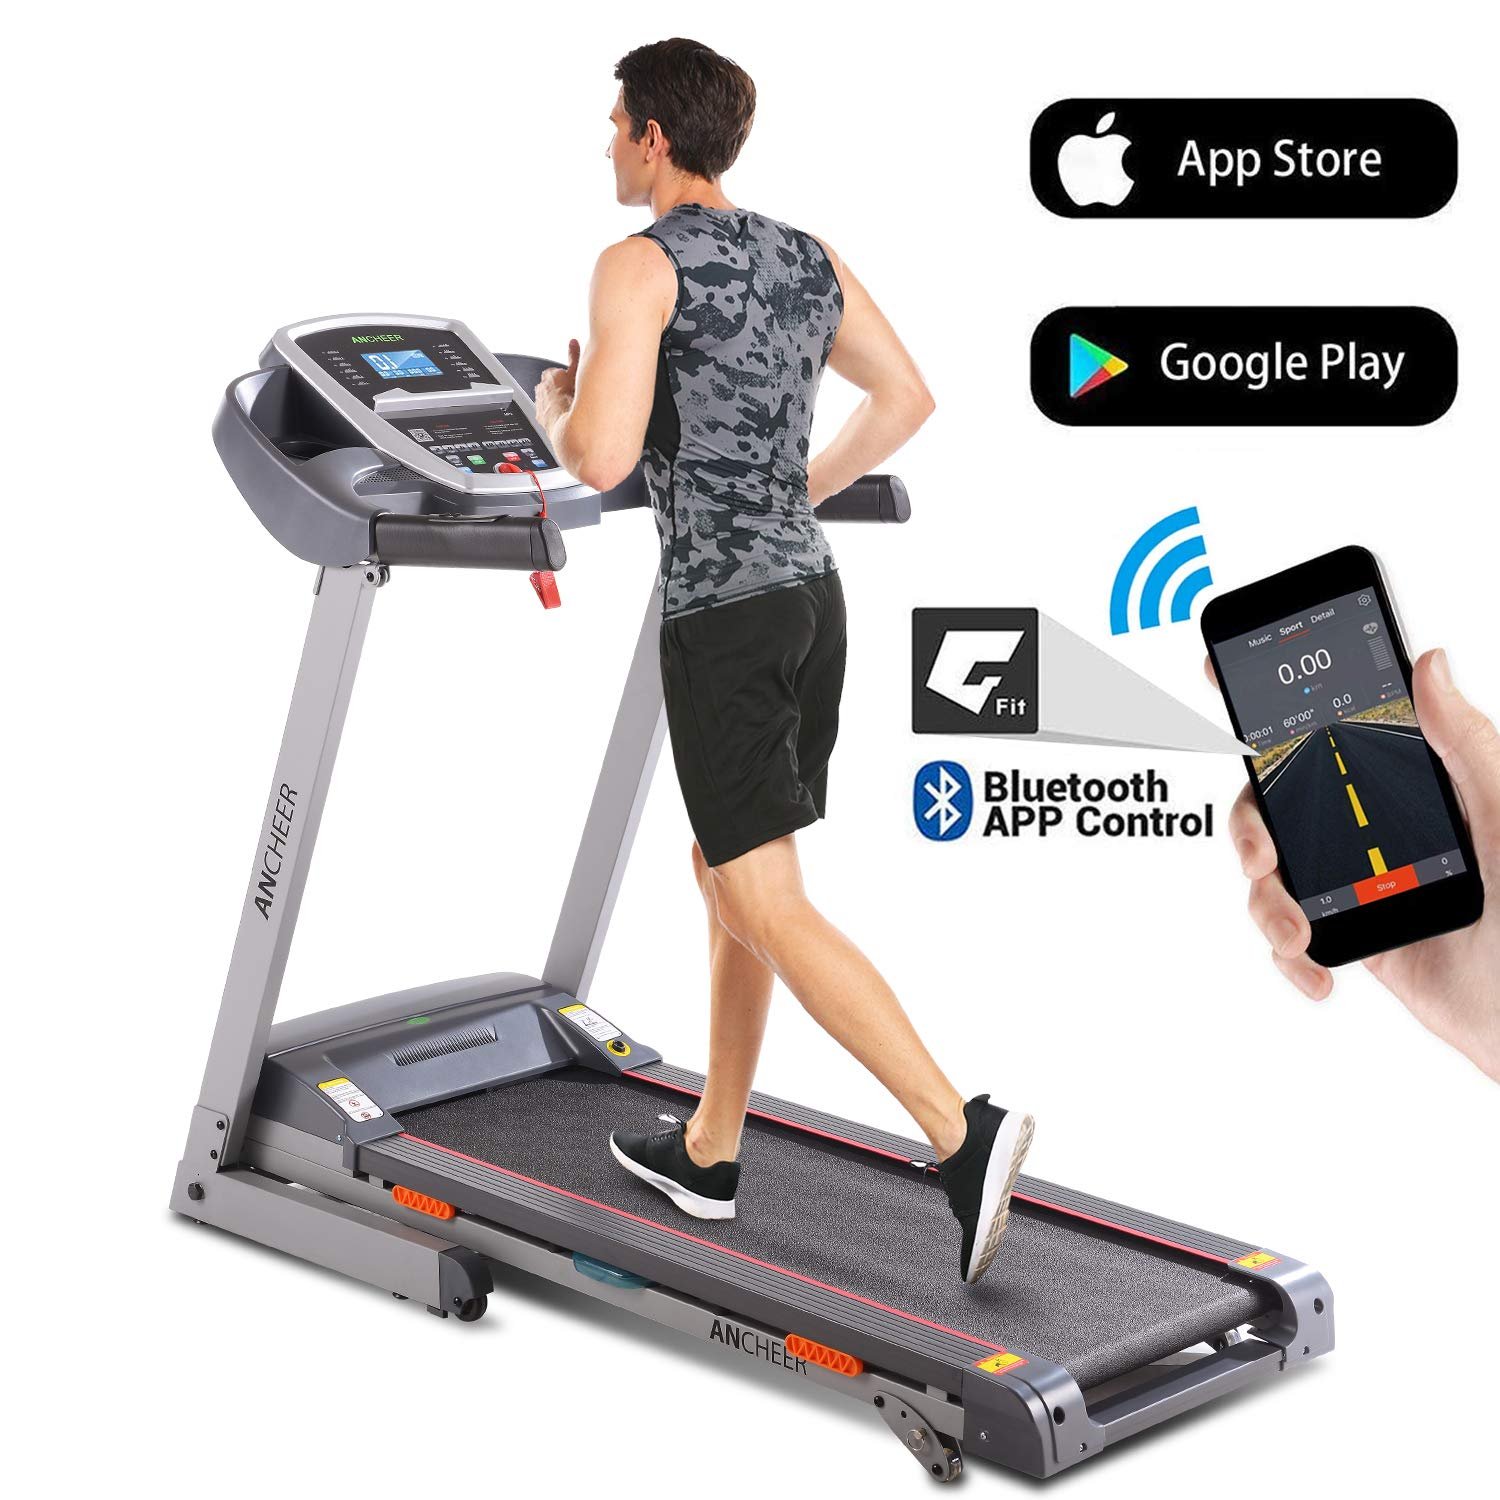 ANCHEER Folding Treadmill, 3.0HP Electric Treadmill with Bluetooth, LCD and Pulse Monitor, Motorized Running Machine with Smartphone APP Control for Home Office Gym Exercise (Gray, X-Large) by ANCHEER